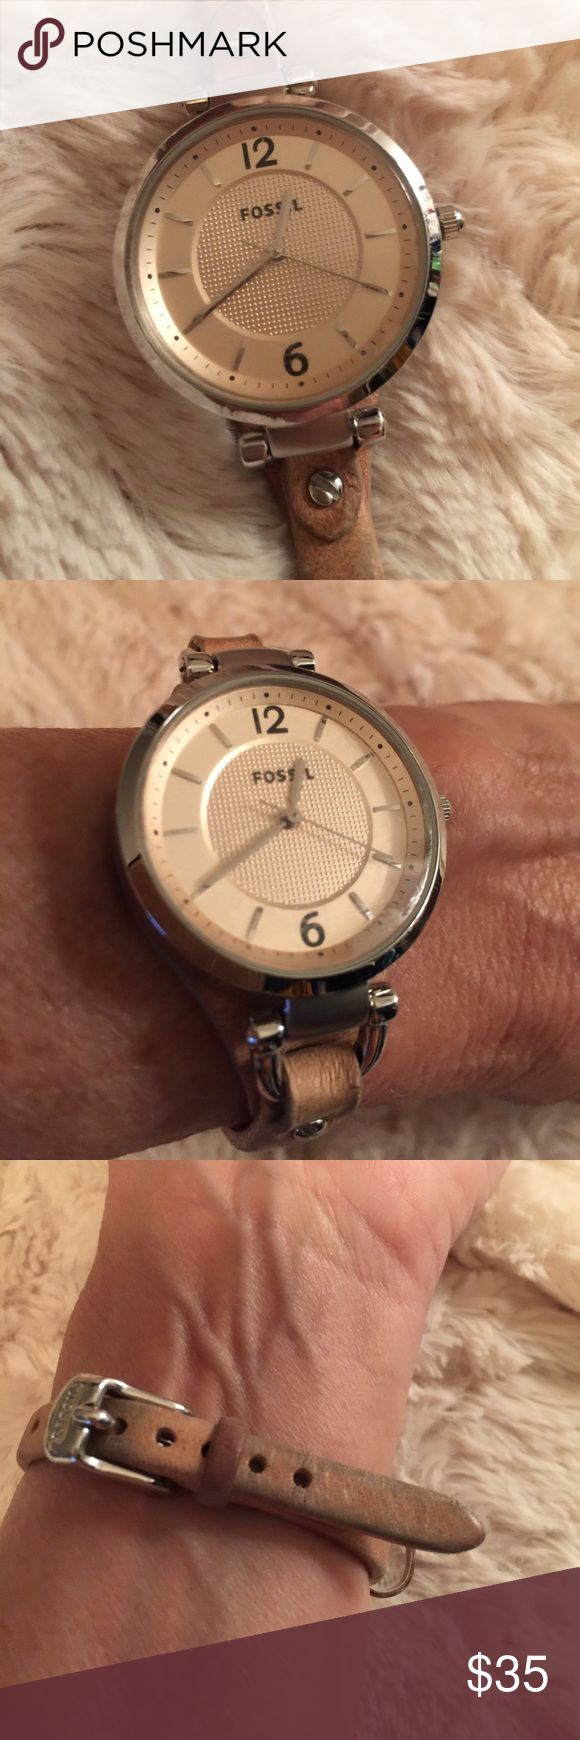 Fossil Watch This is a great watch. Yes the battery works. There is some wear on the band as shown in the picture.  Comes with the box. Fossil Accessories Watches